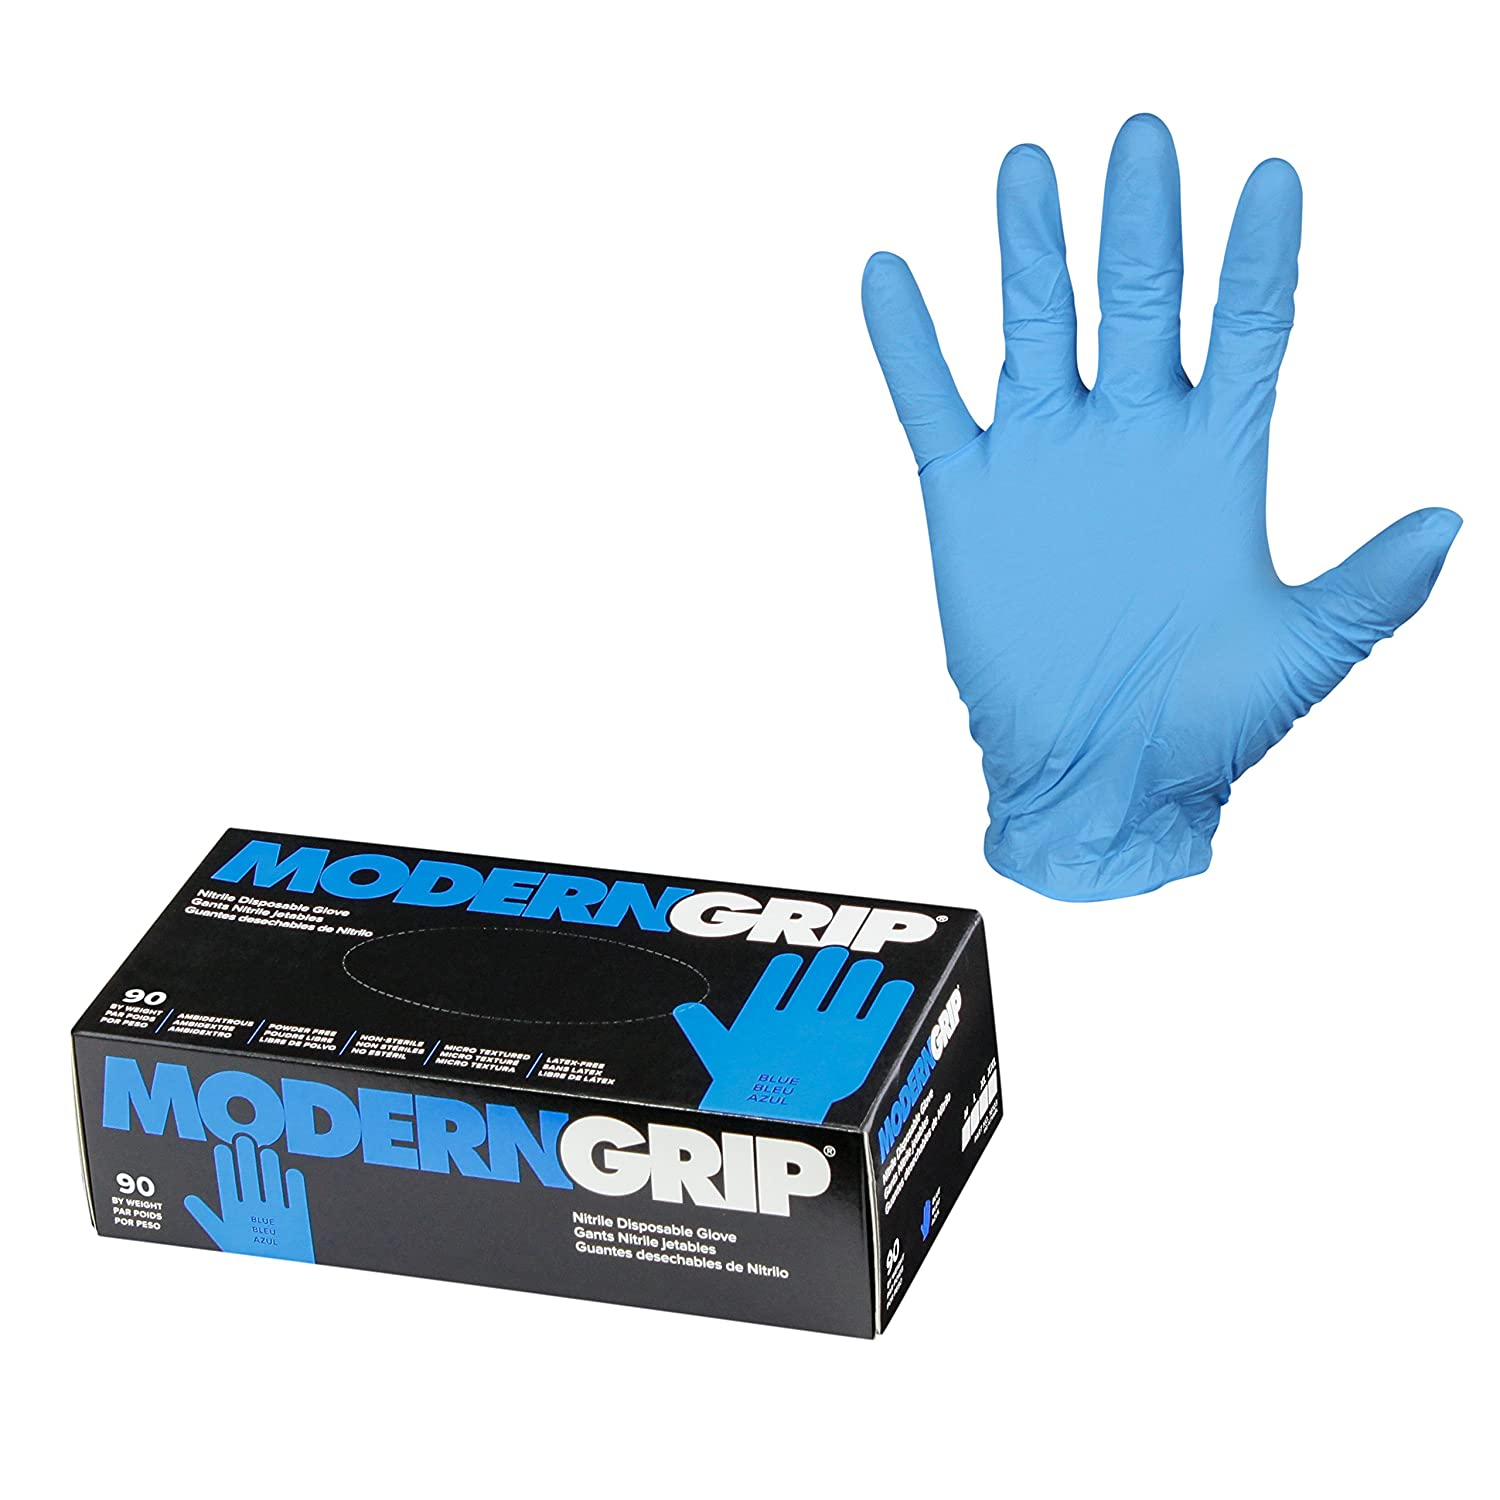 XXL Modern Grip 16103-XXL Nitrile 6 mil Thickness Premium Disposable Gloves Powder Free Micro Textured for Superior Grip Latex Free Blue Industrial and Household 90 count